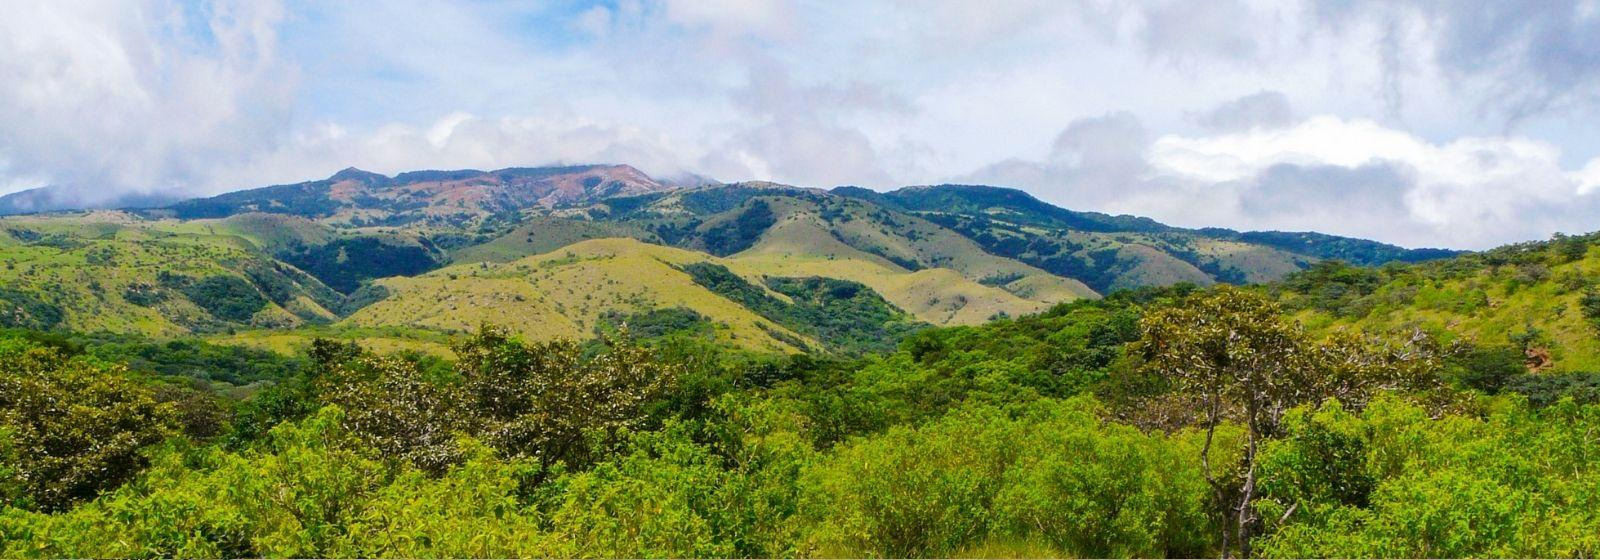 Things to do in Guanacaste and Northwest